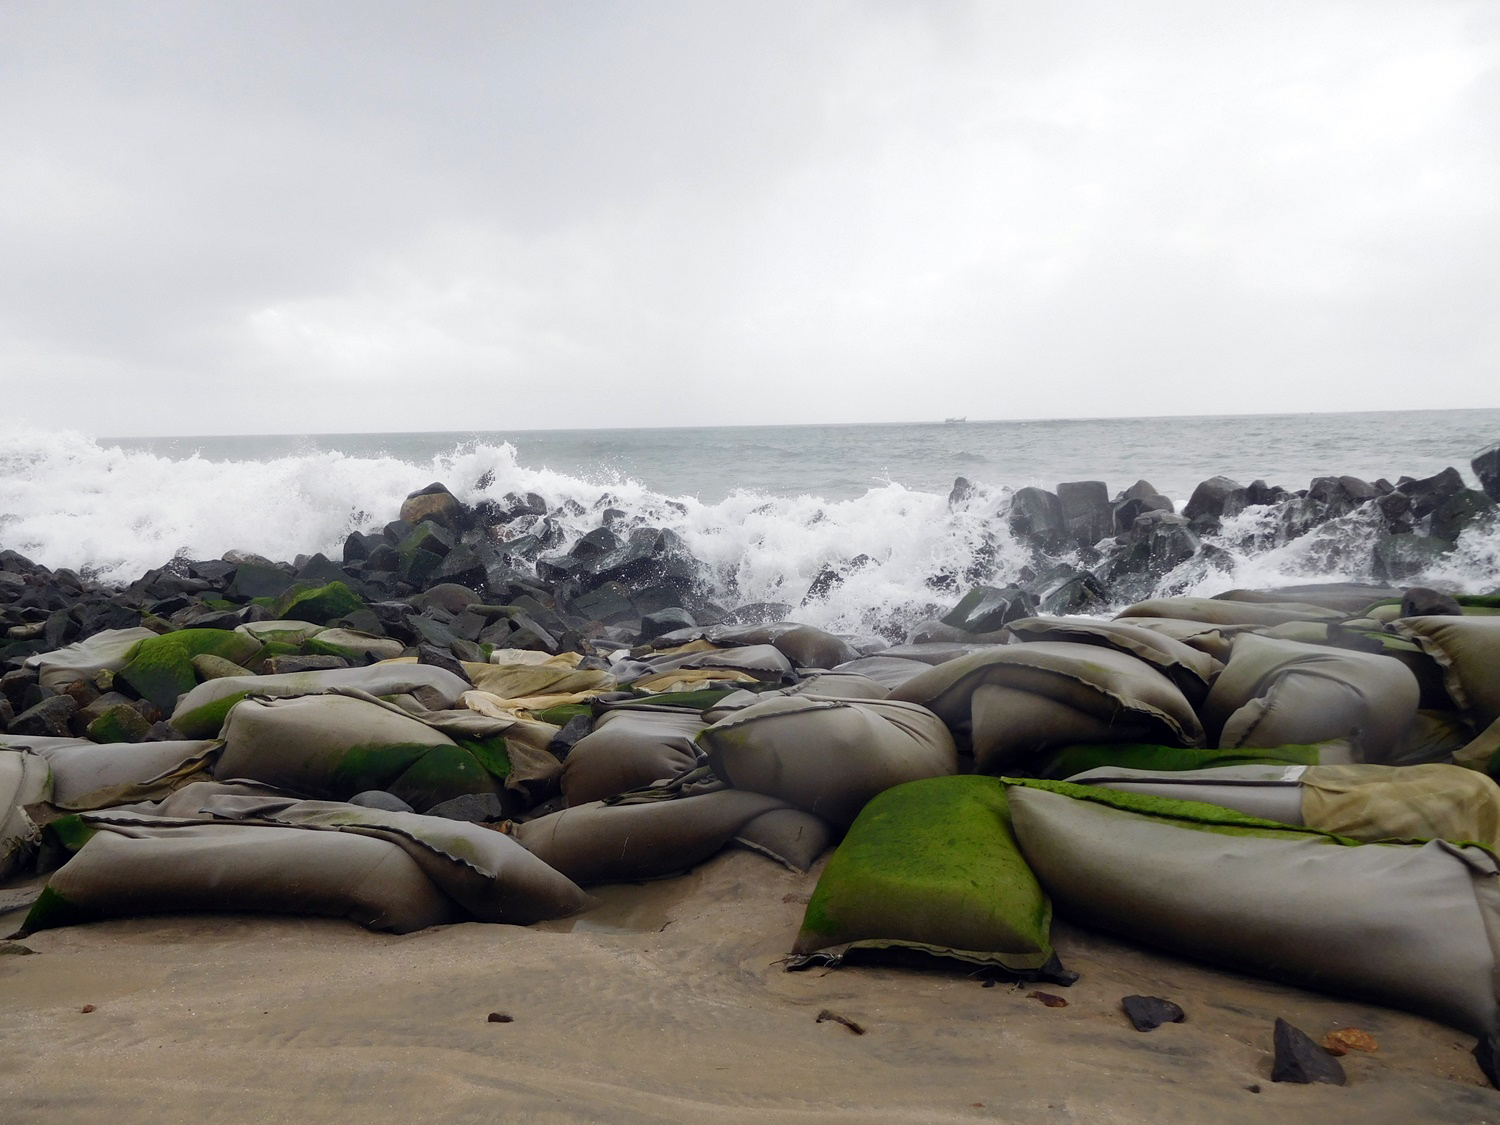 Huge waves destroyed the sea wall in Companyppadi neighbourhood in Chellanam. In the foreground are sandbags placed by village residents to prevent erosion. (Photo credit: TA Ameerudheen).